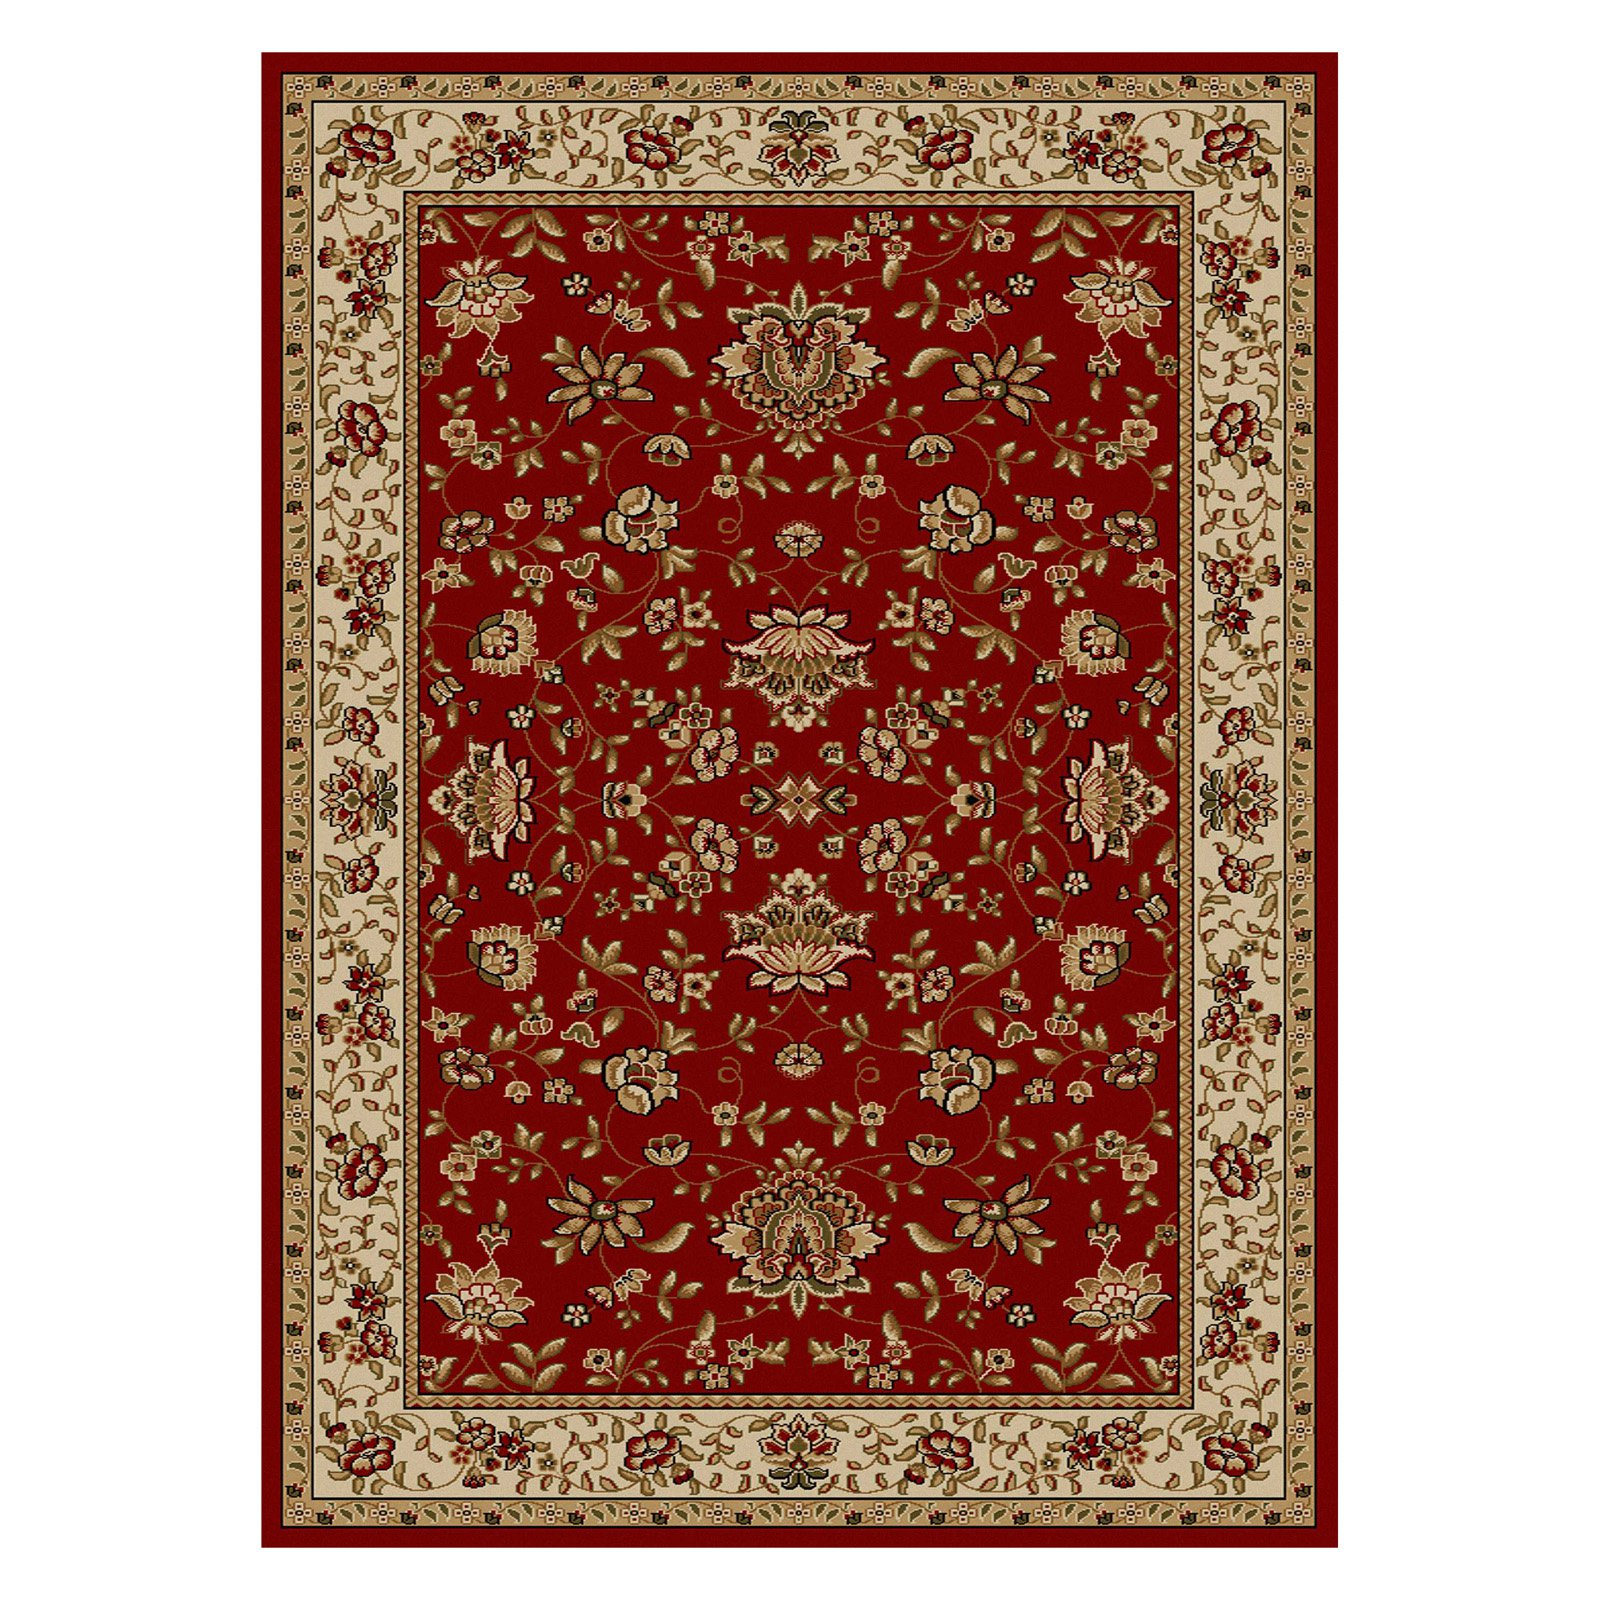 Radici Usa Como Area Rugs - 1597 Traditional Oriental Red Italian Bordered Floral Leaves Rug